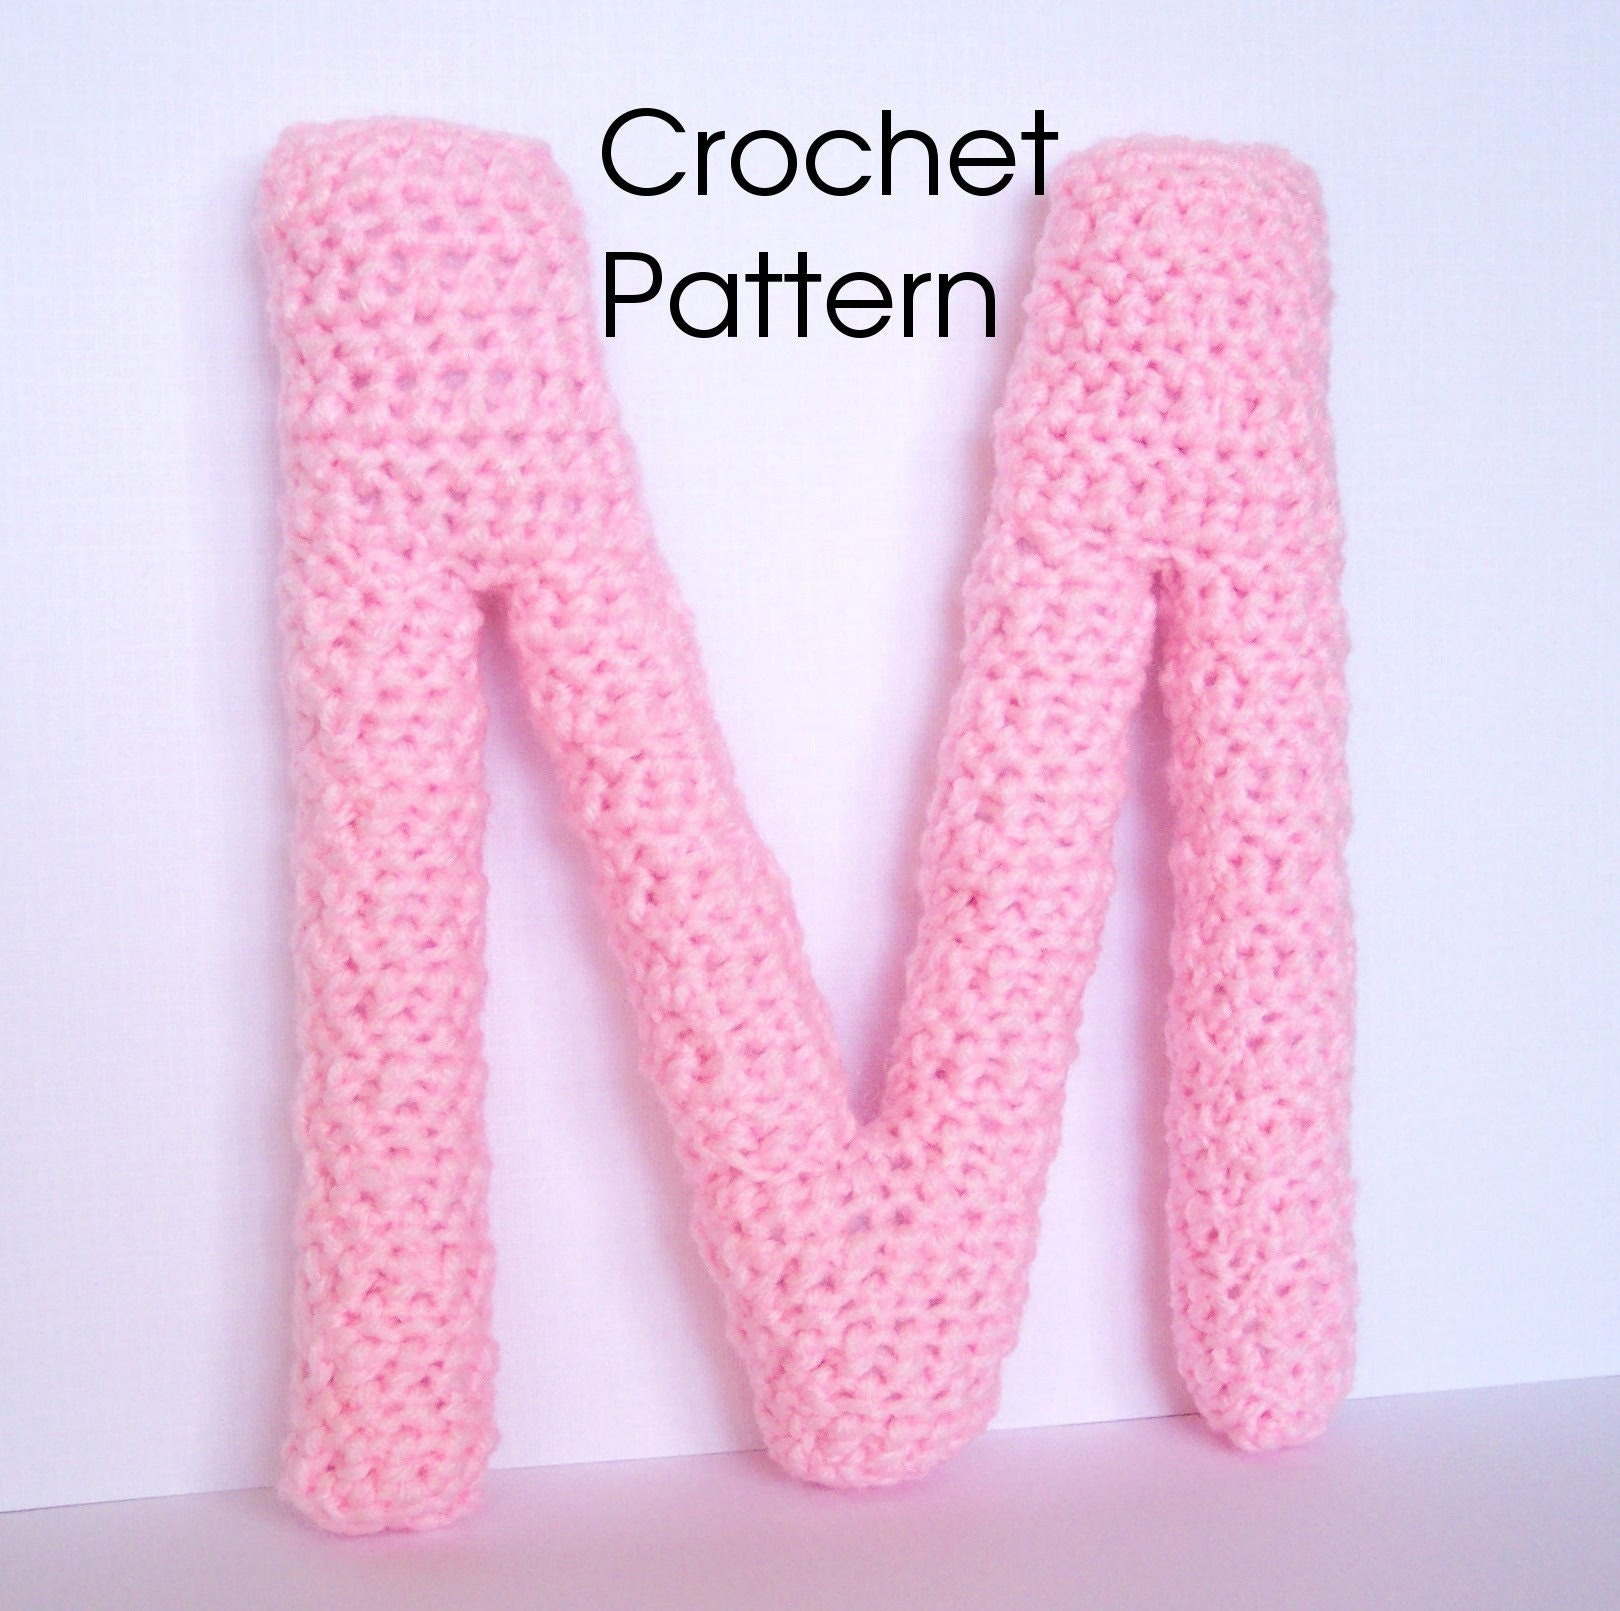 ... Photos - Free Crochet Alphabet Pattern Crochet And Knitting Patterns